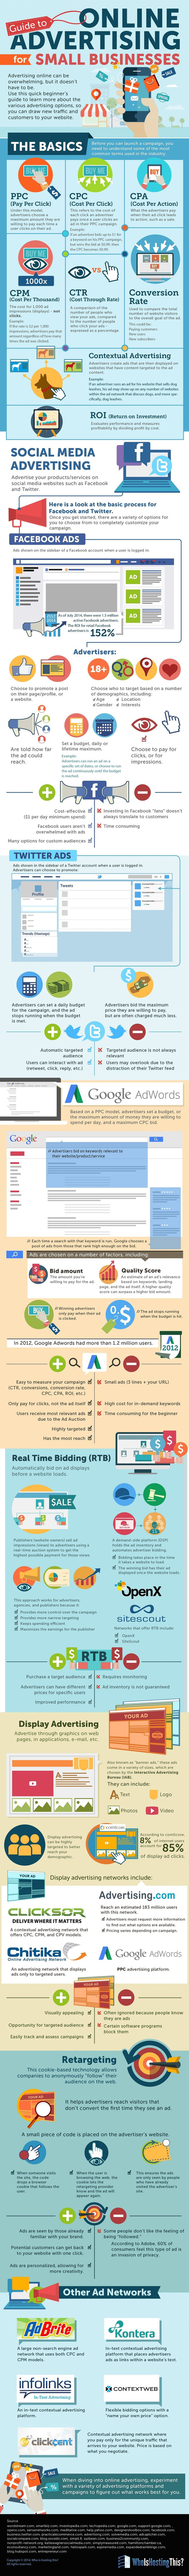 Guide to Online Advertising for Small Businesses #infographic